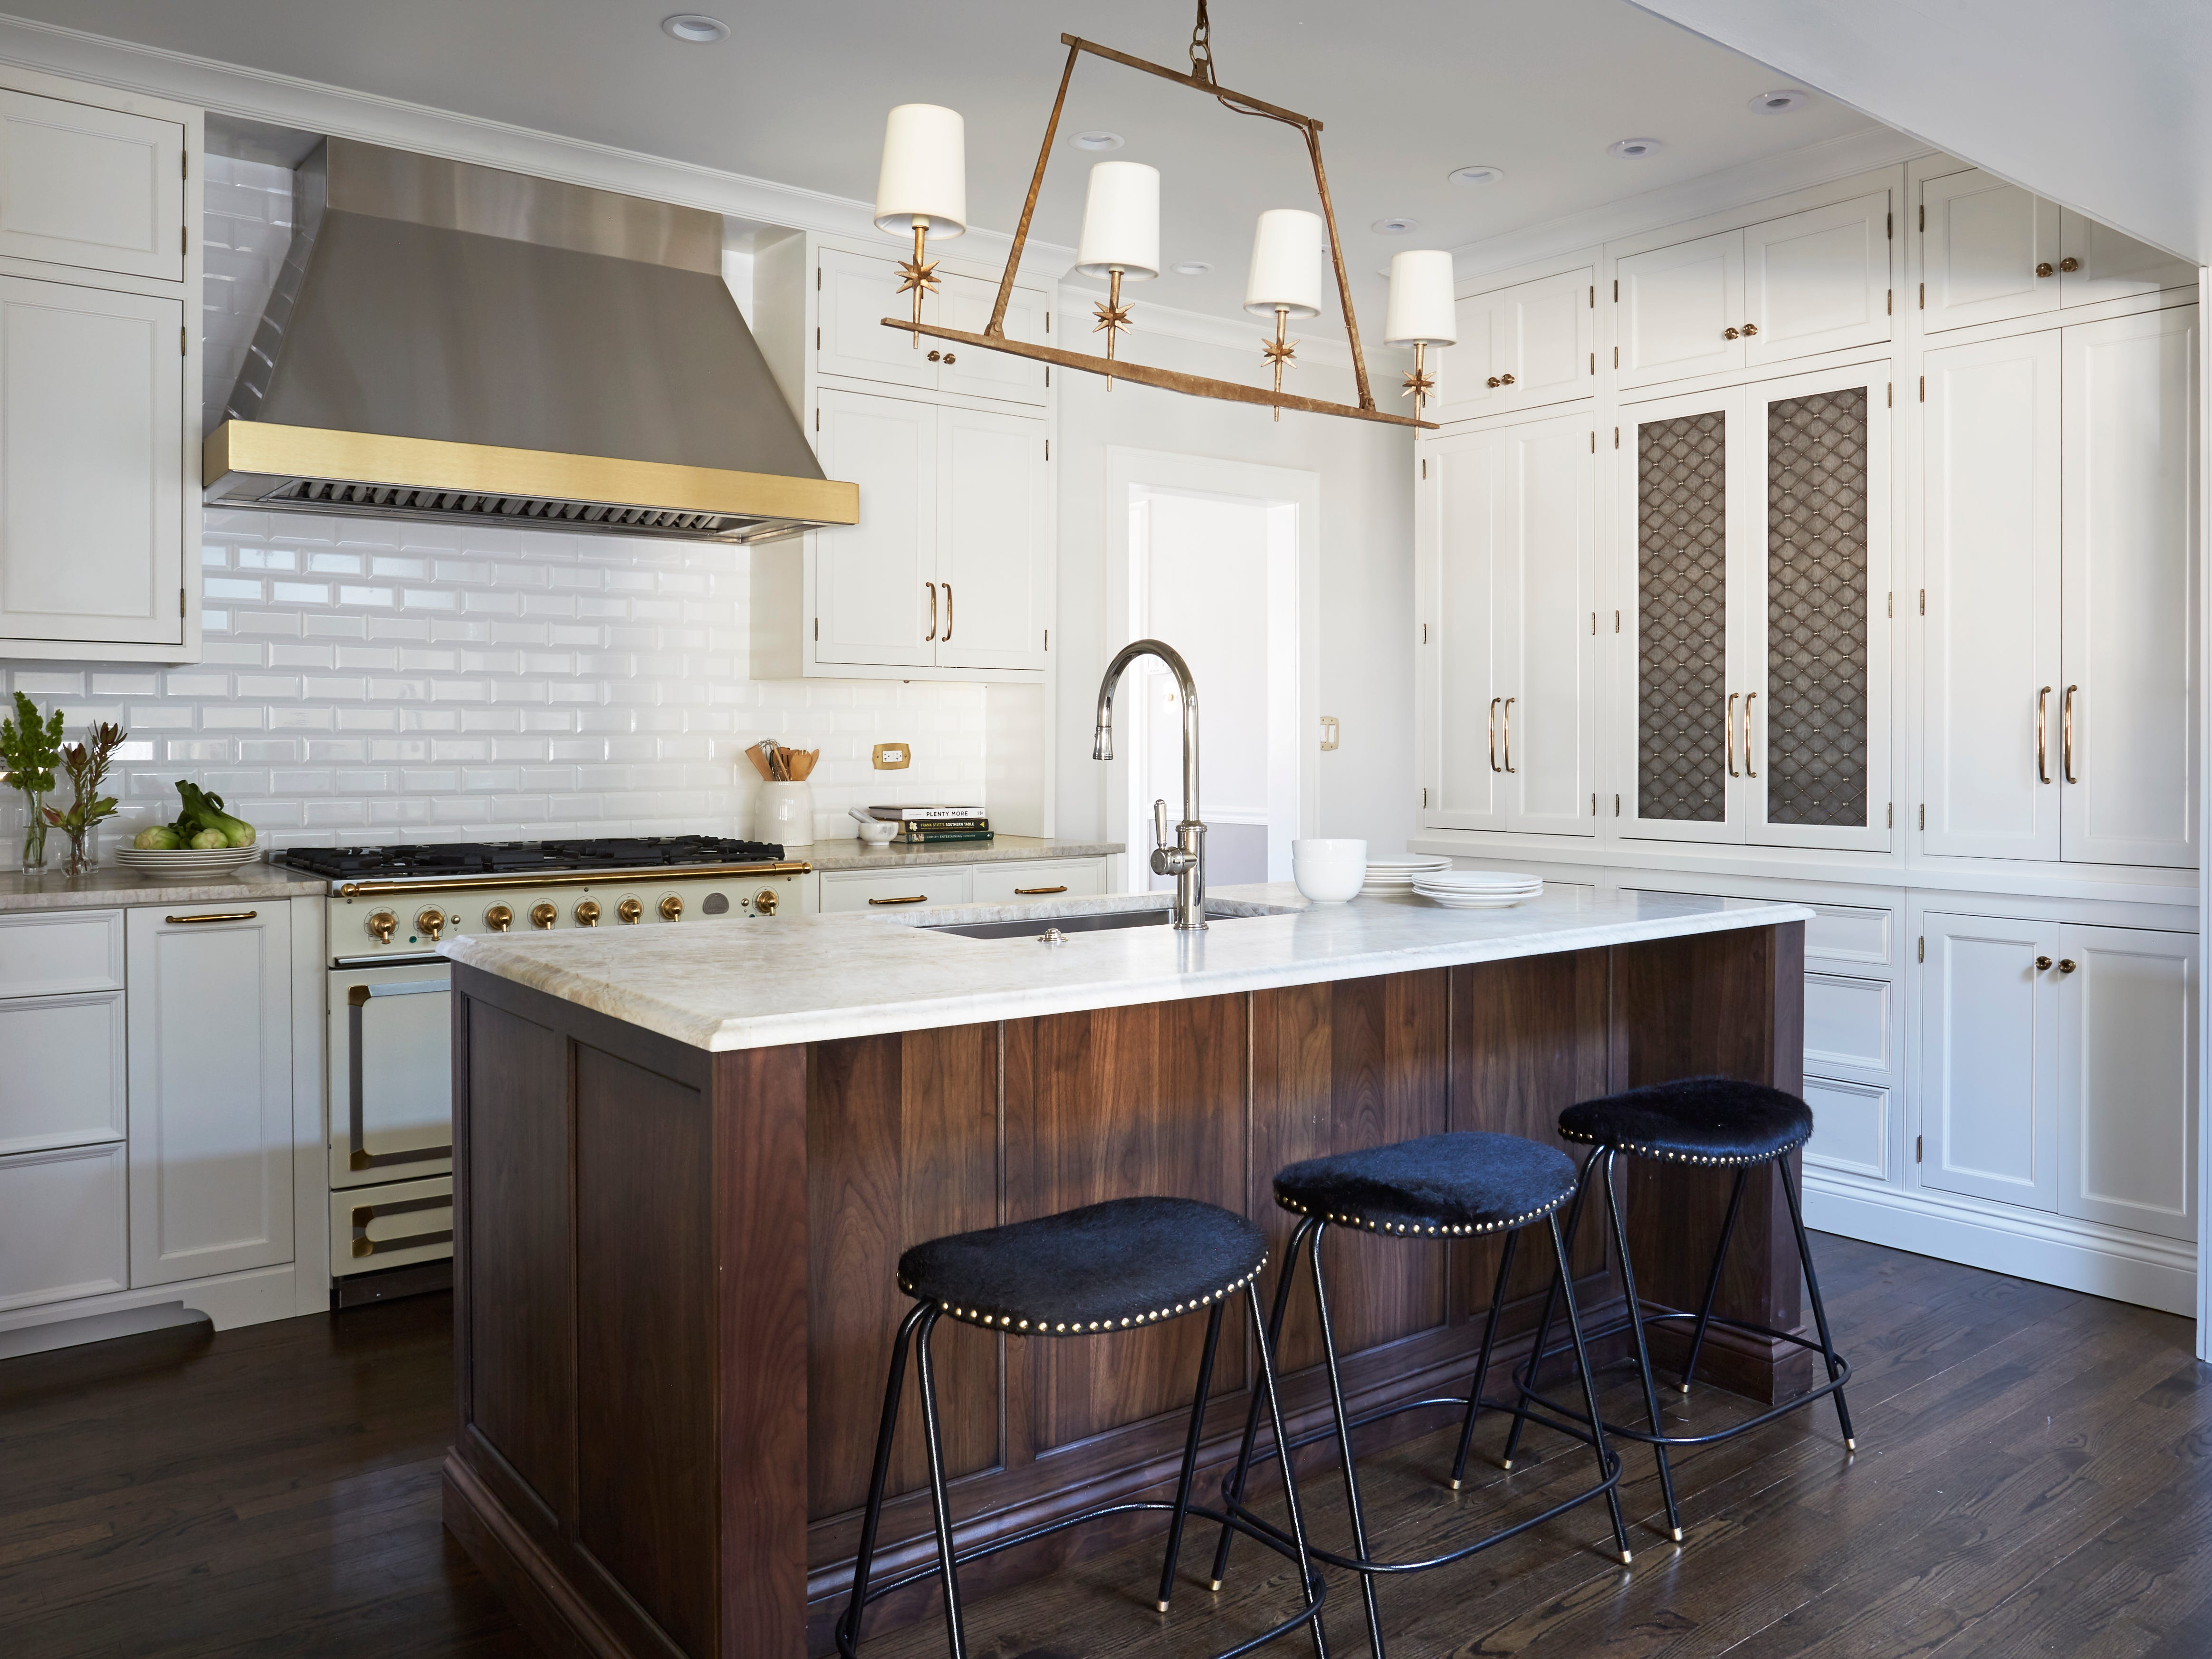 This walnut island has a quartzite countertop with Ogee edge; it contrasts well with the brass accents in this kitchen.